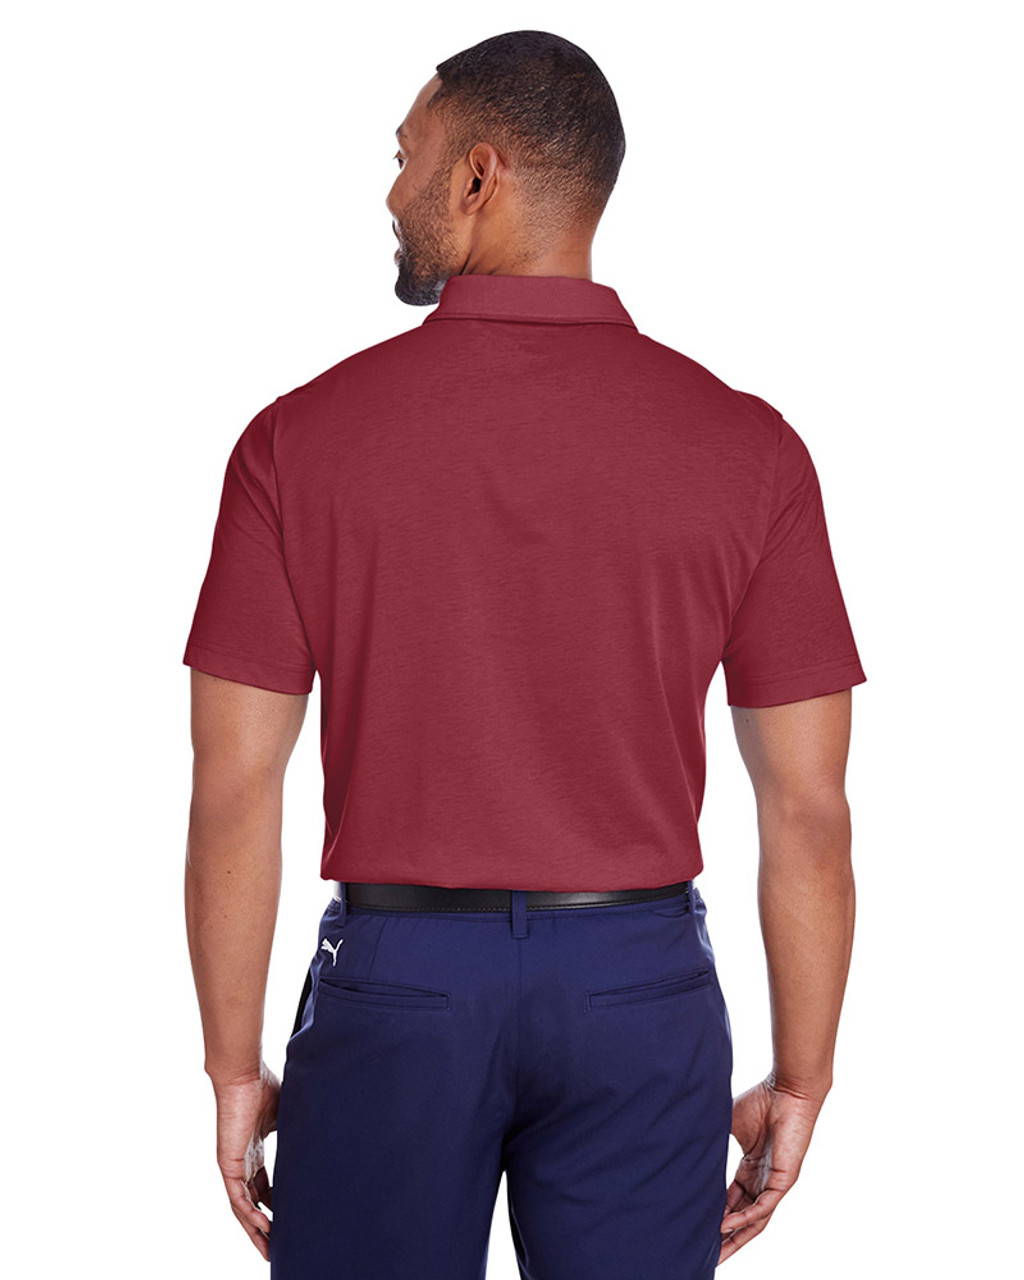 Cabernet - back, 596920 Puma Golf Men's Fusion Polo | Blankclothing.ca